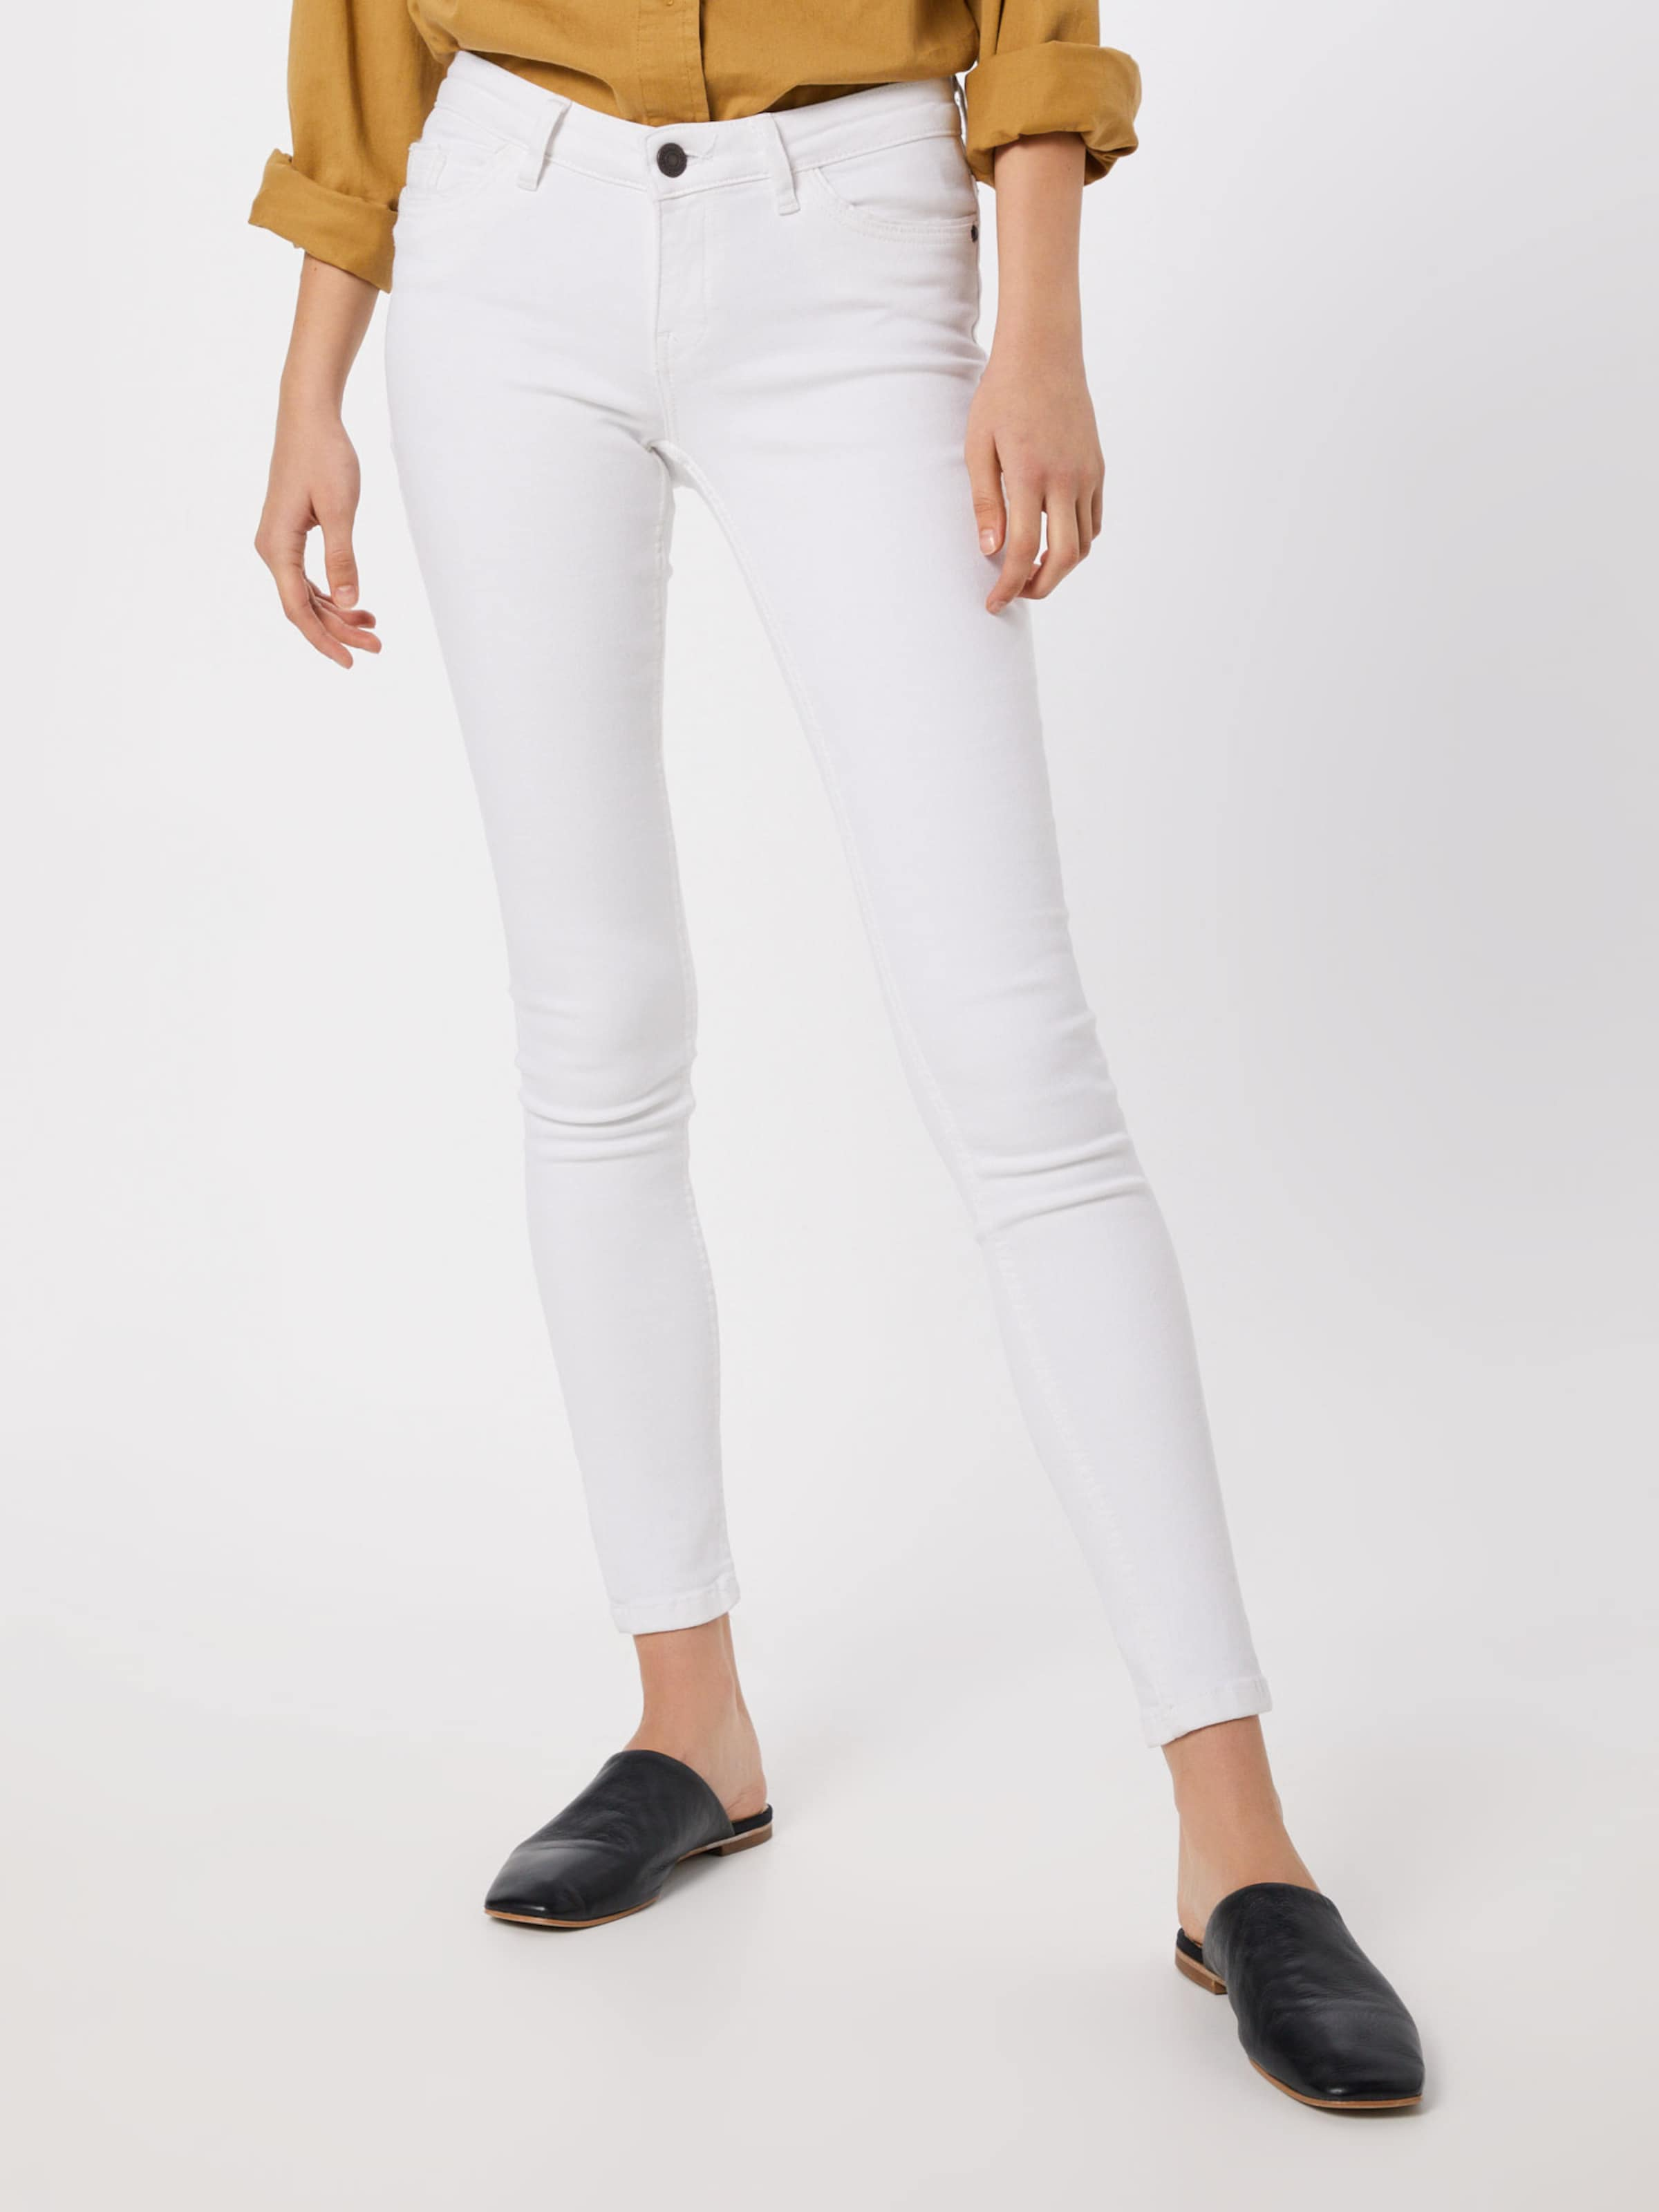 May Blanc 'eve Jean Piping Jeans White En Lw Noisy Pckt Noos' 8O0wPnk